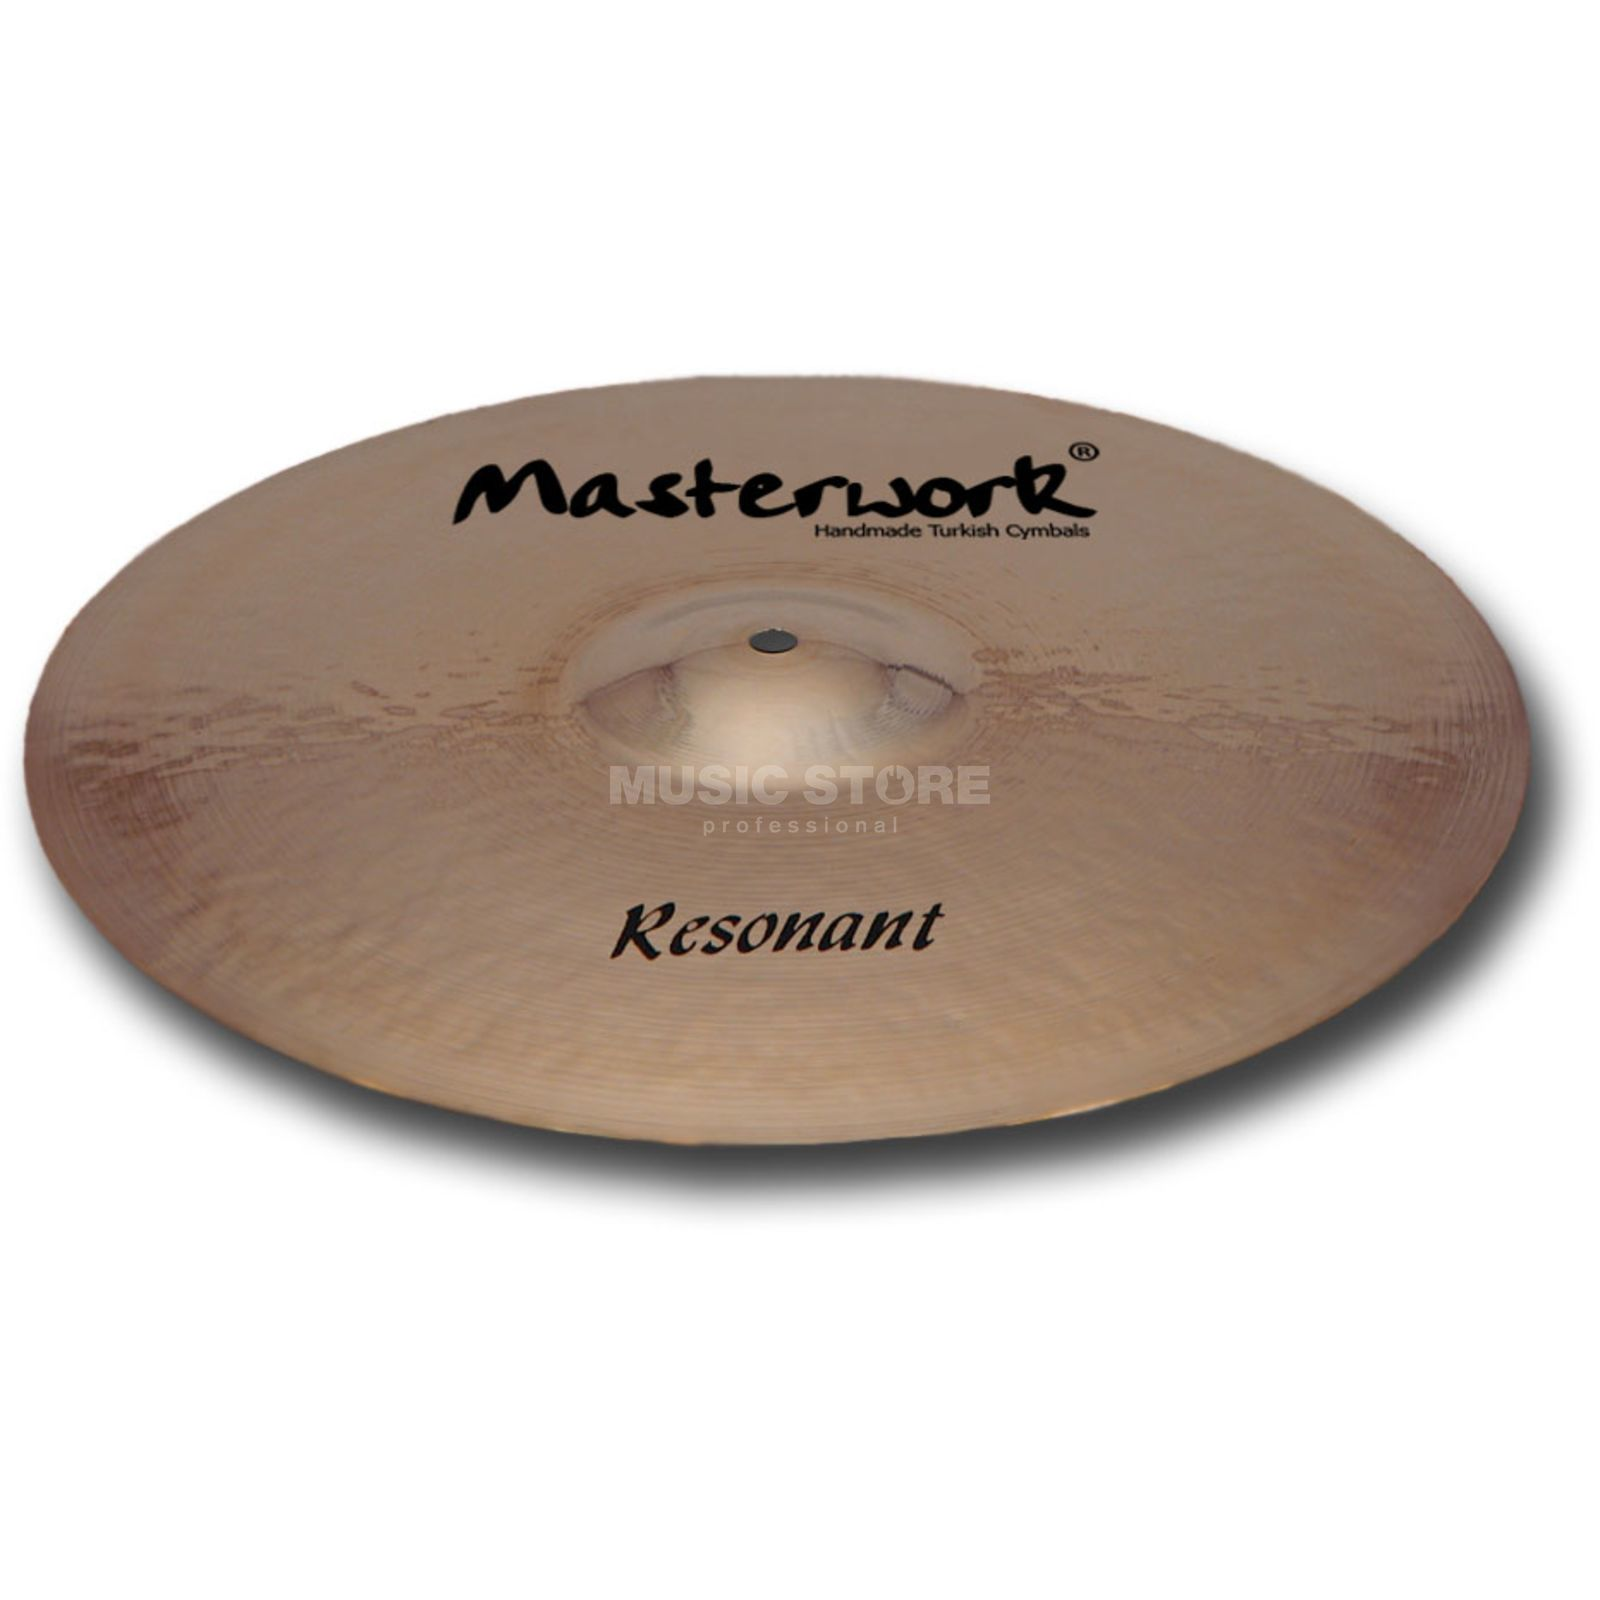 "Masterwork Resonant Crash 16"", finition brillante Image du produit"